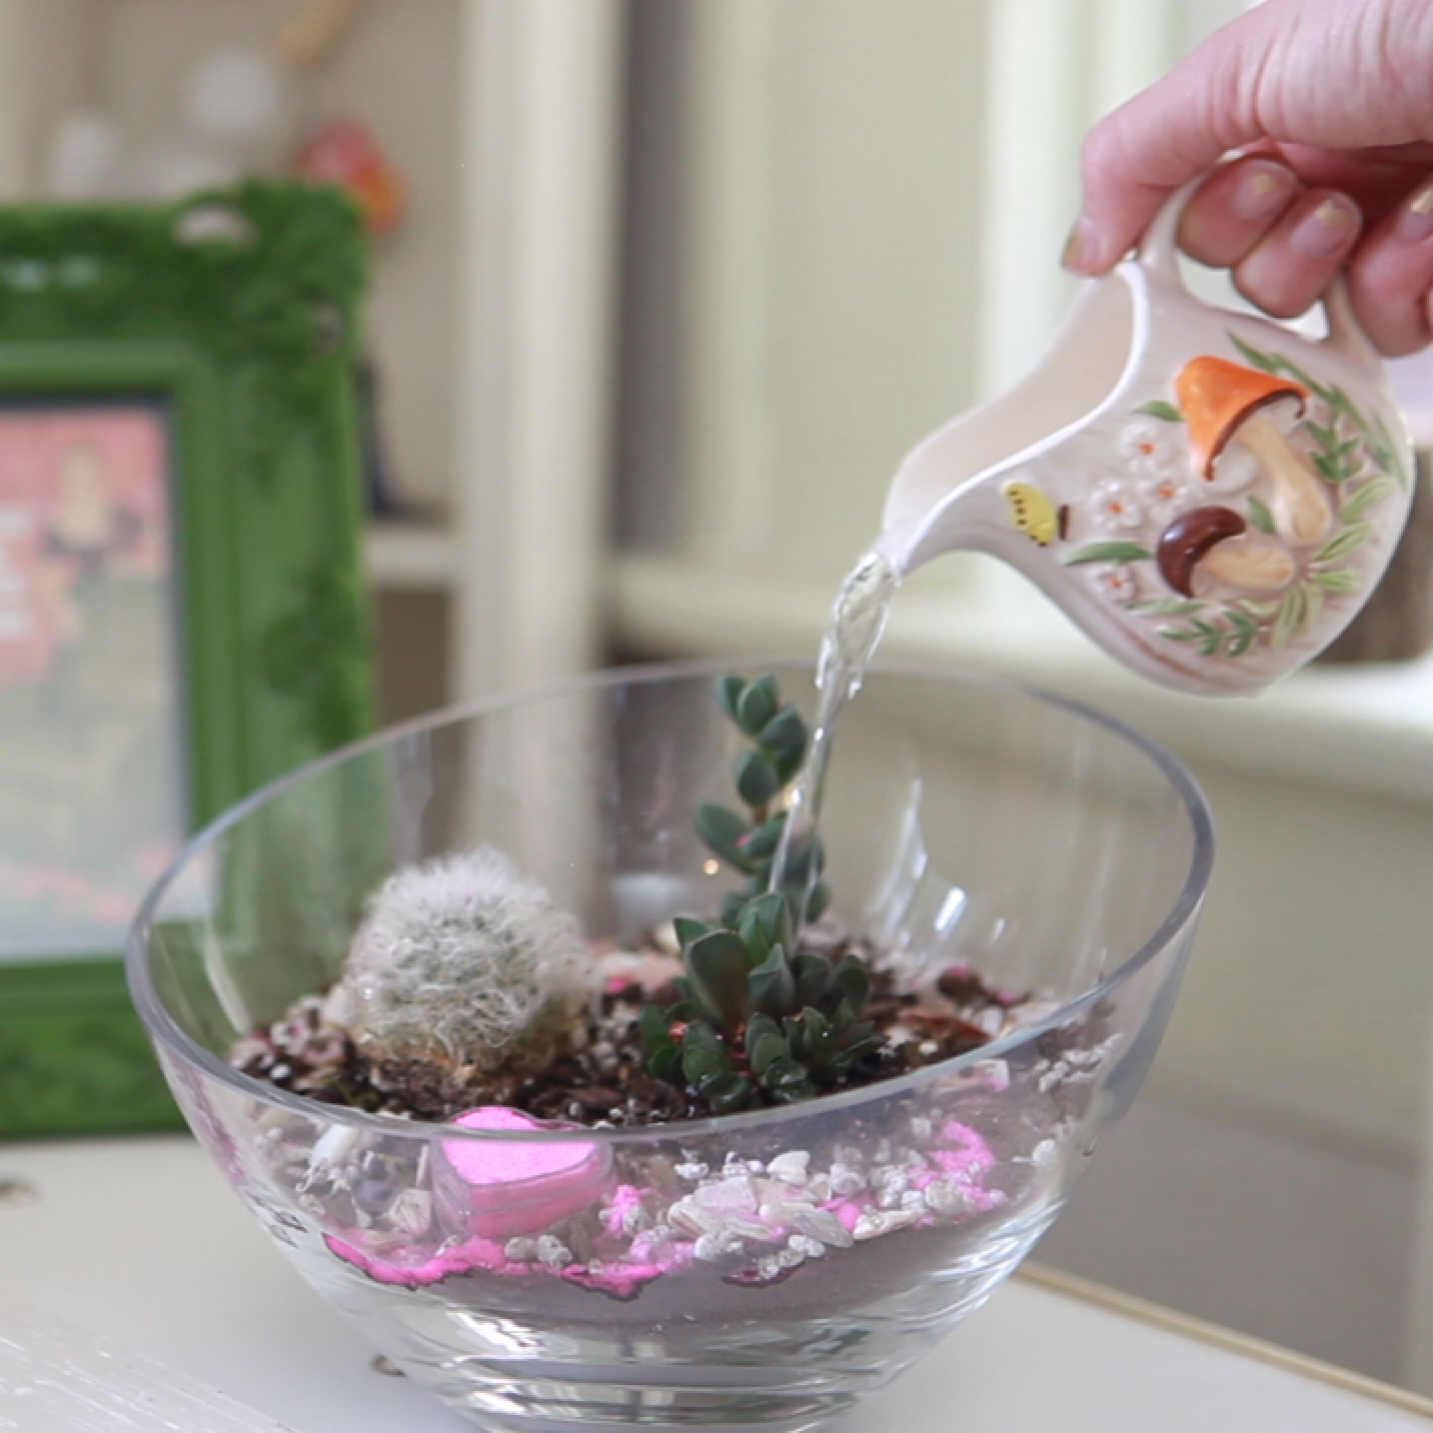 Water Succulent Terrariums Once Every Few Weeks How To Care For Succulent Terrariums Pop Shop America Hosts Terrarium Workshops Custom Makes Terrariums And Hosts Art Events In Houston Pop Shop America